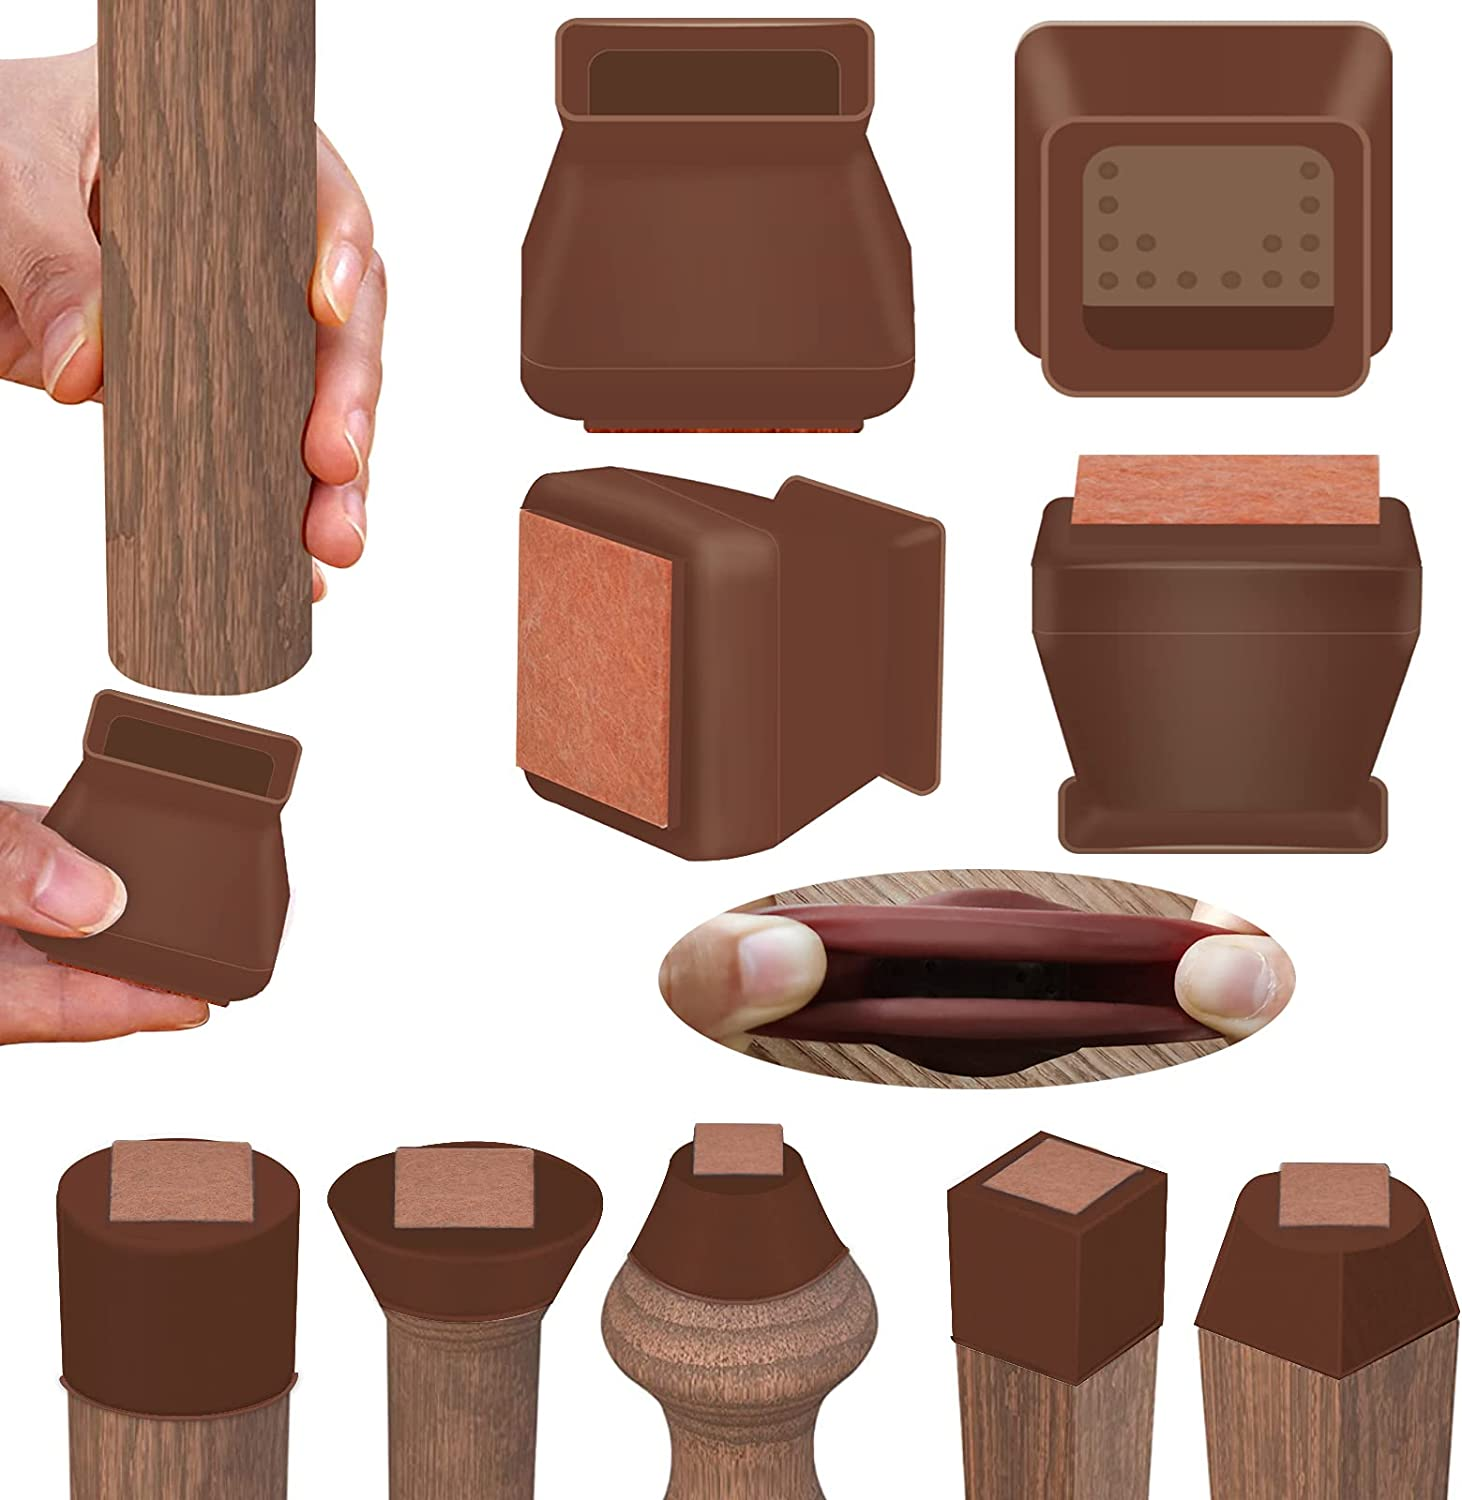 Silicone Chair Leg Floor Protectors with Felt, 16pcs Round&Square Silicone Chair Leg Covers for Mute Furniture Moving, Elastic Furniture Silicone Protection Cover (Square Dark Walnut, Small)